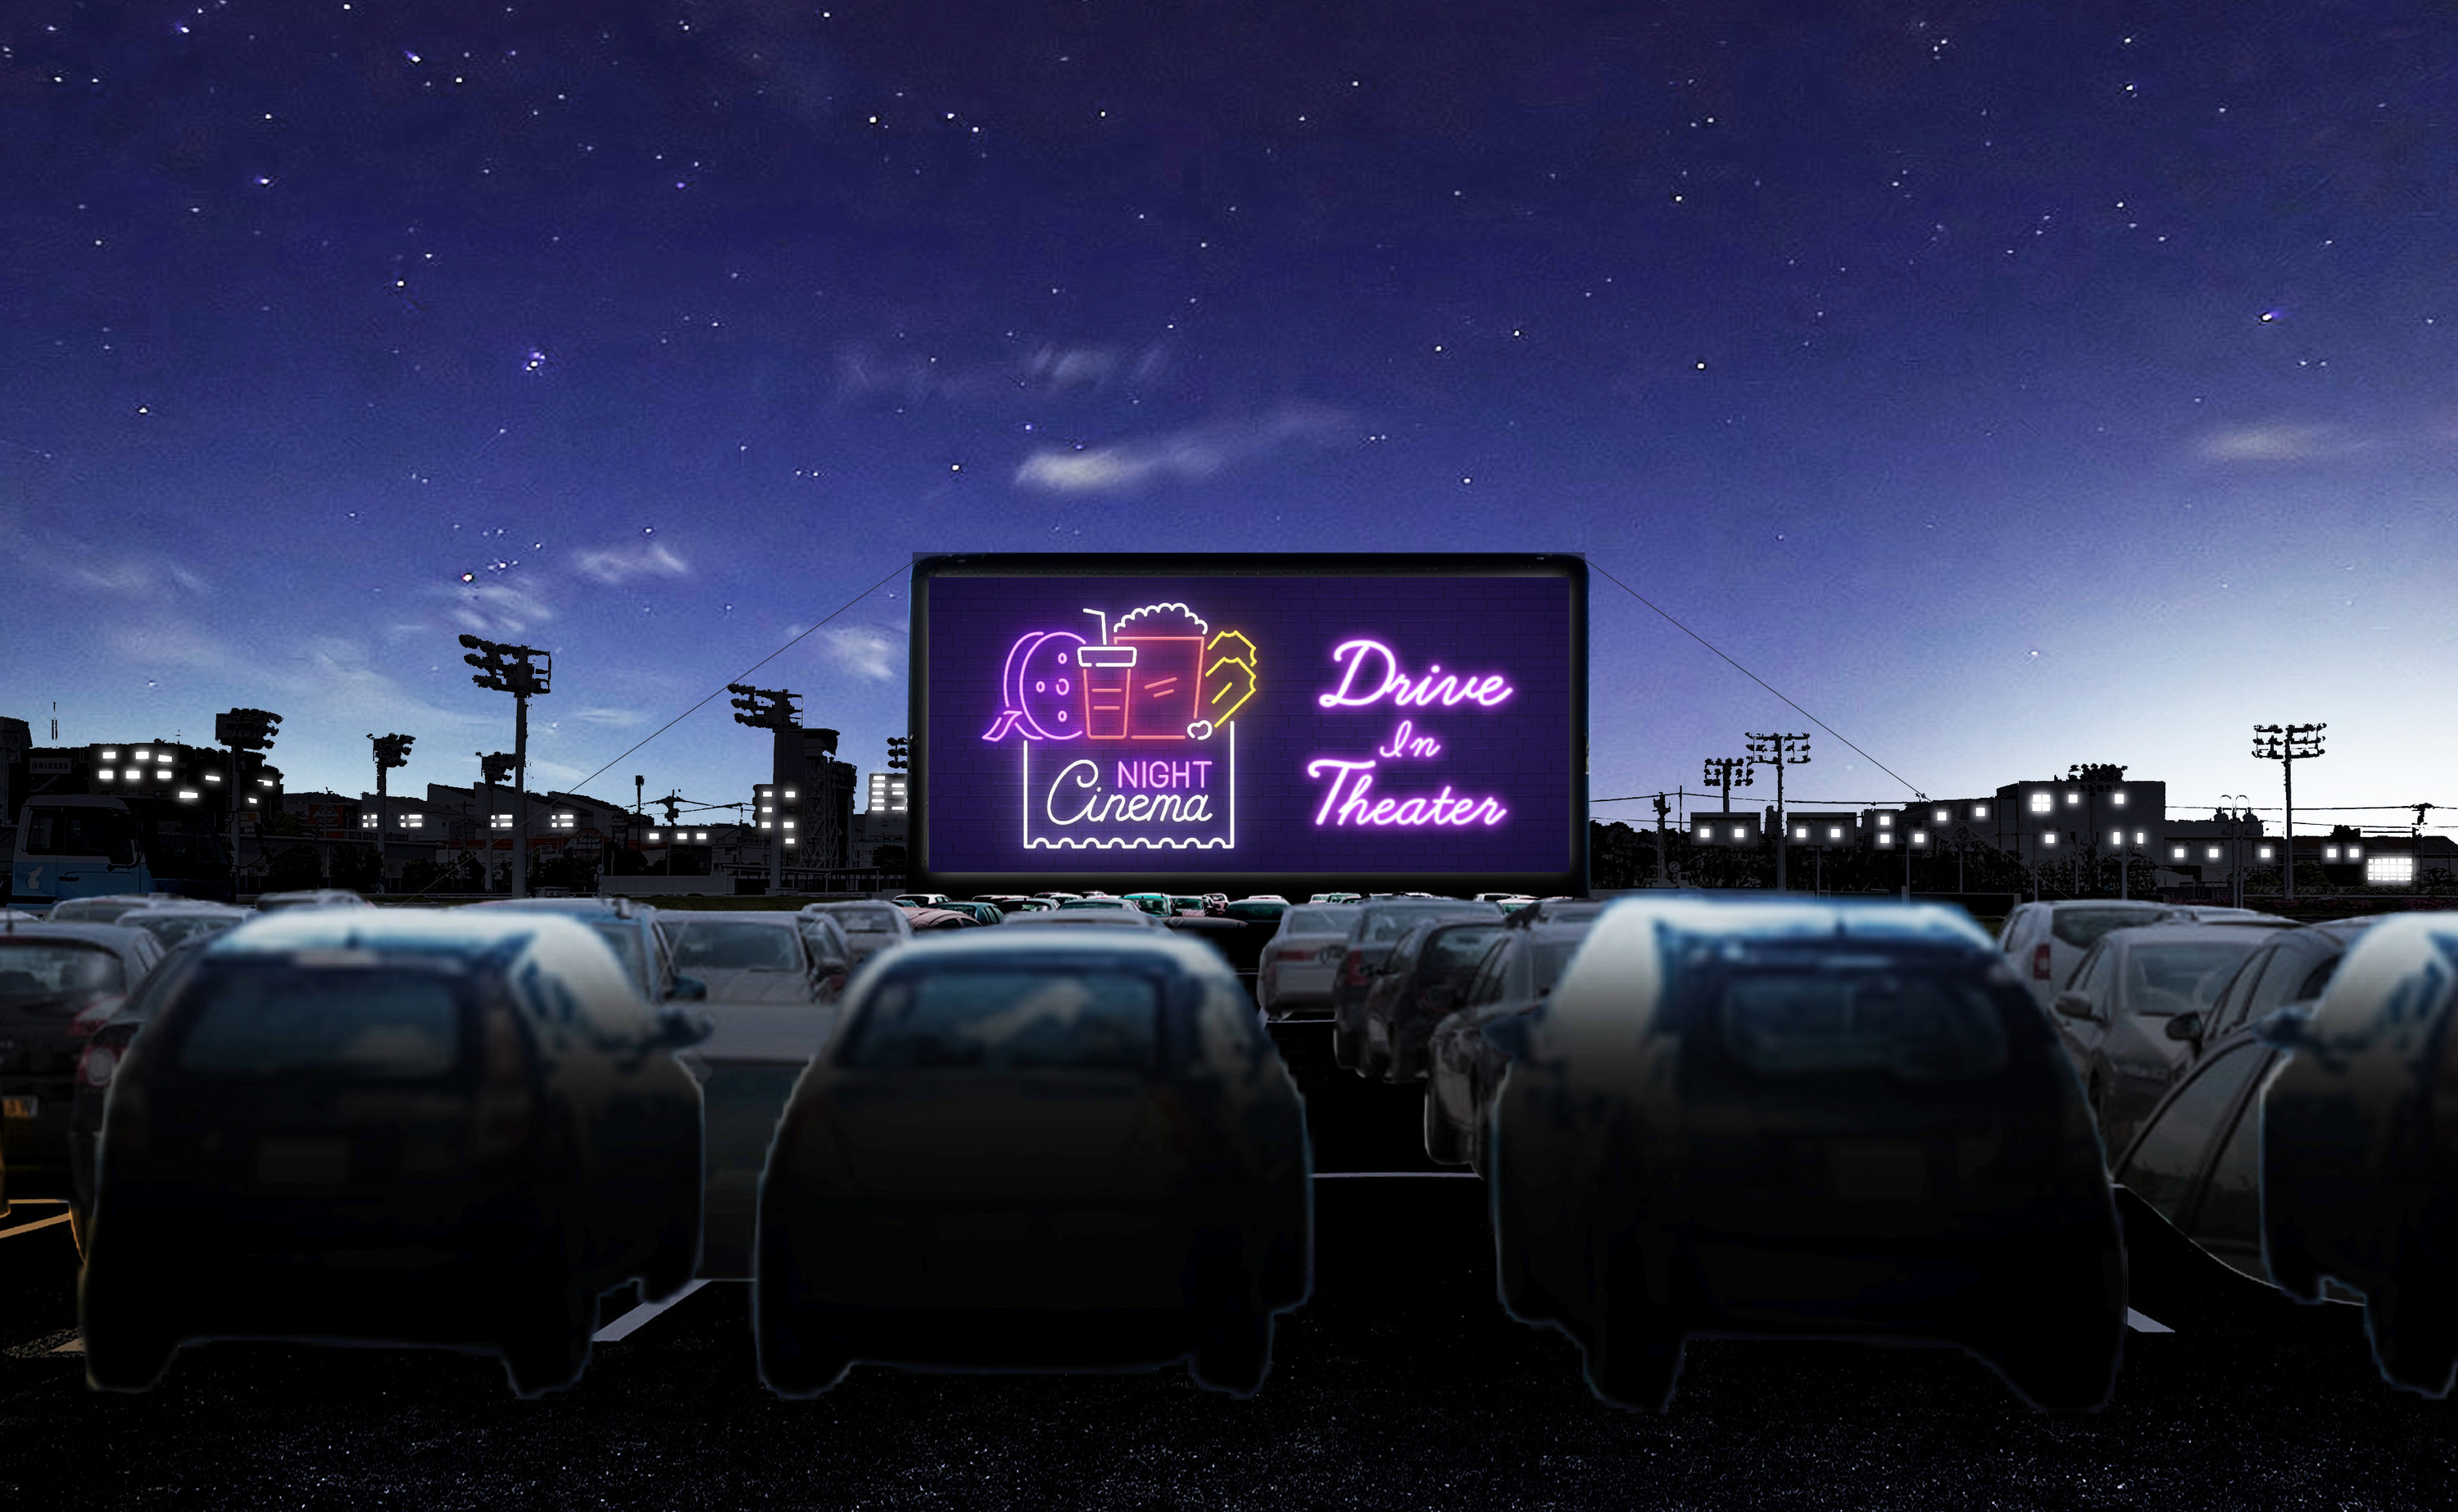 CINEMATHEQUE -Drive-in Theater